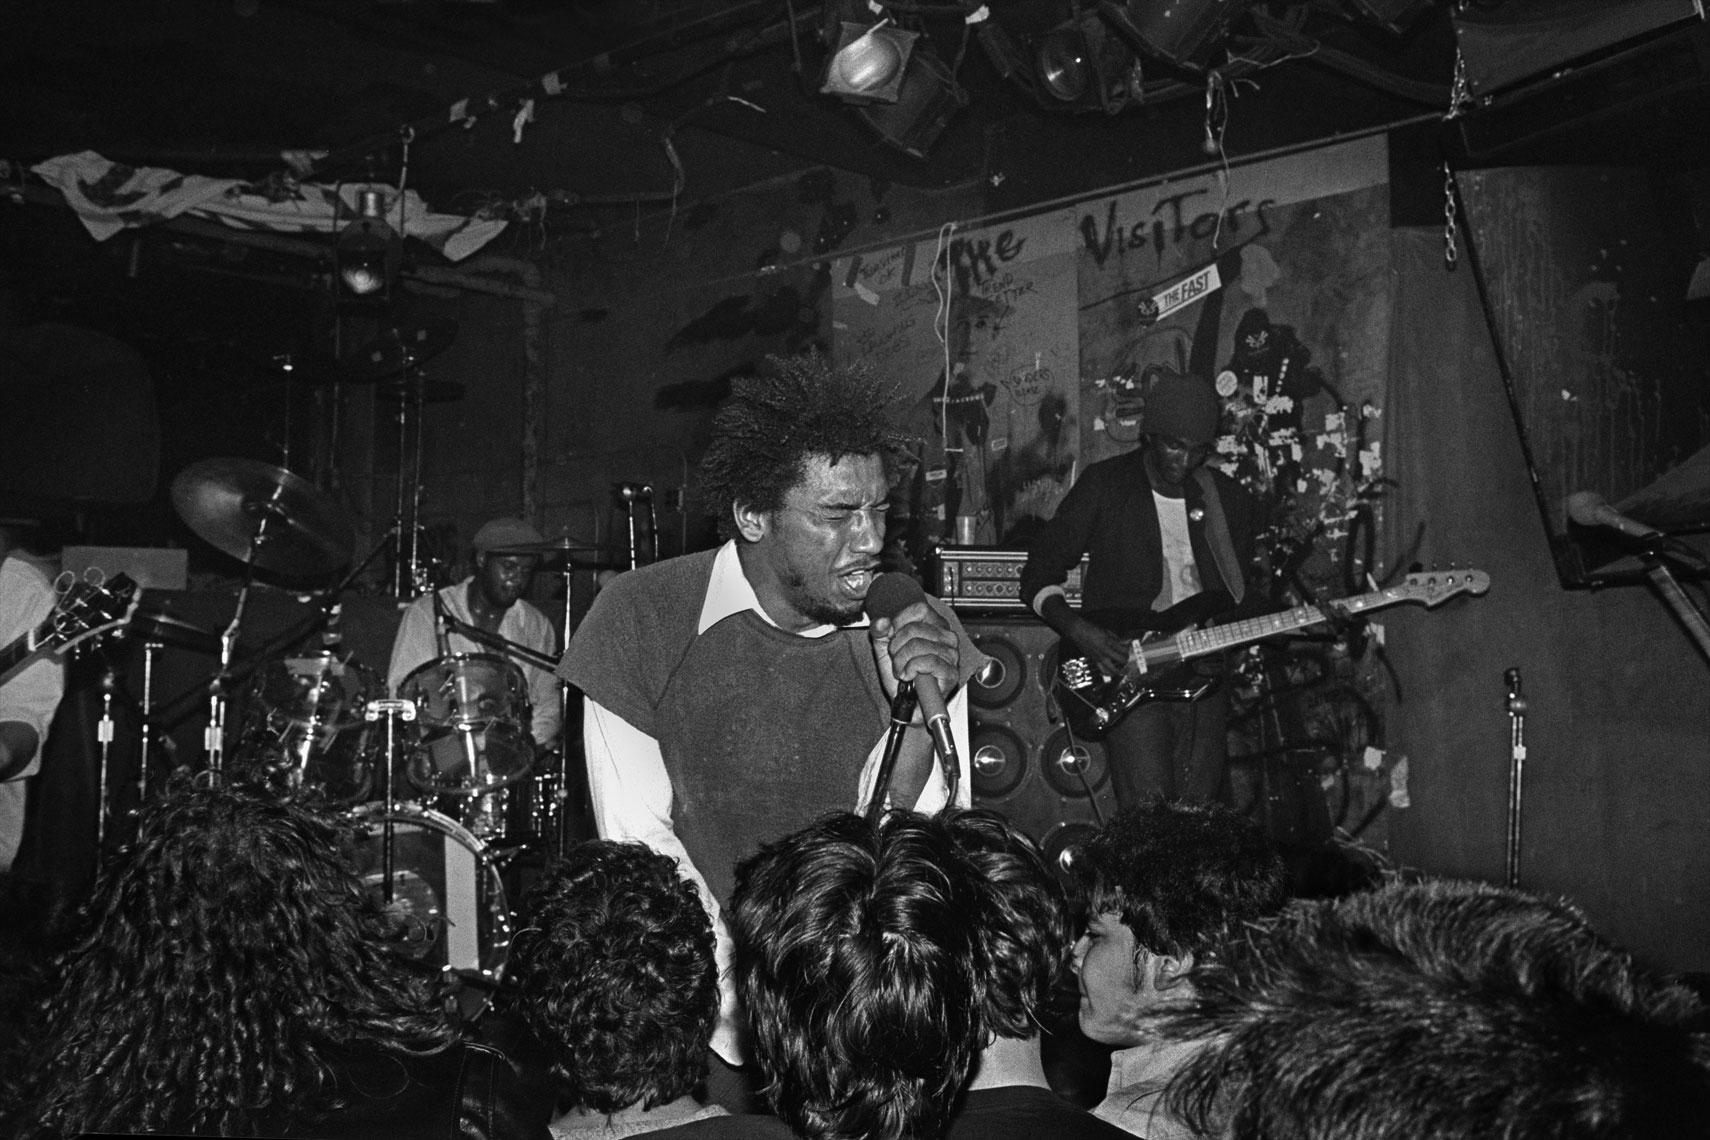 012_012_Bad_Brains_CBGB